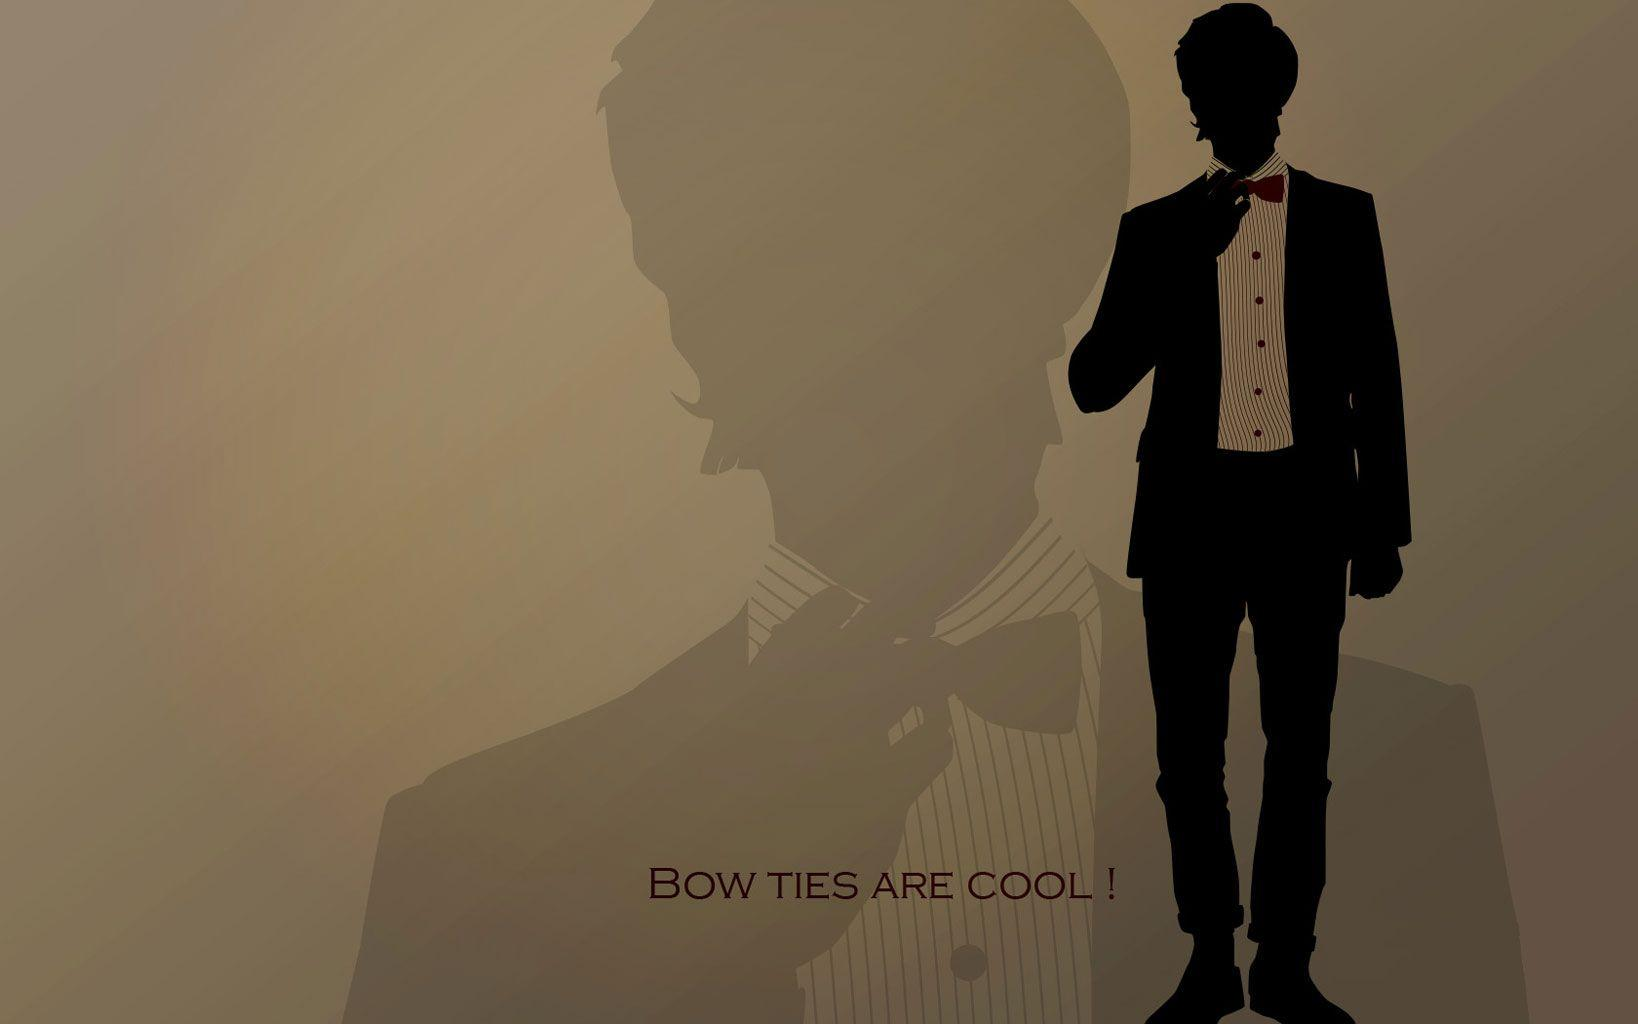 bow 2 wallpaper - photo #16